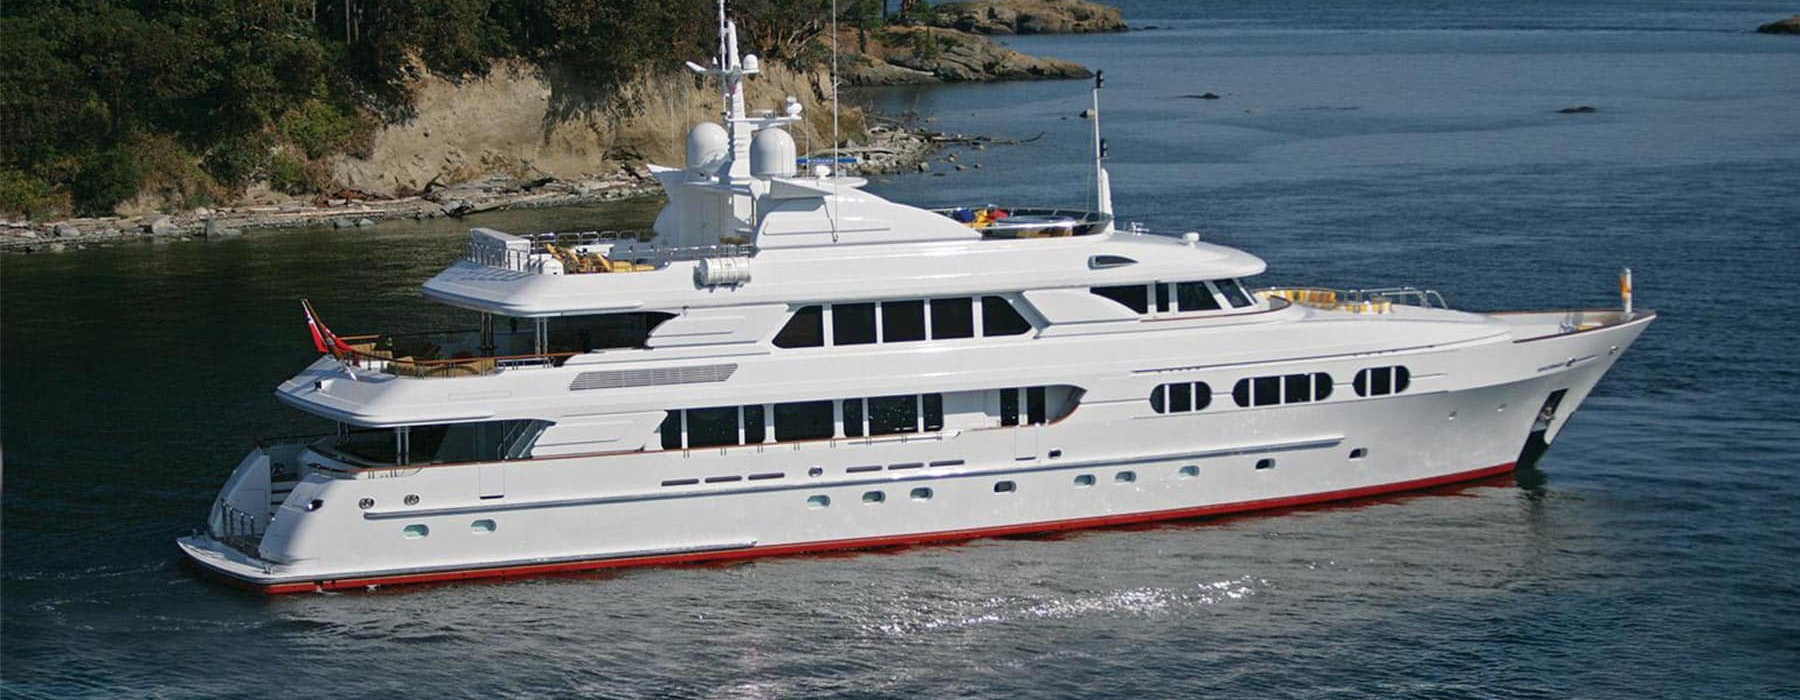 SORCHA Northern Marine luxury yacht for sale